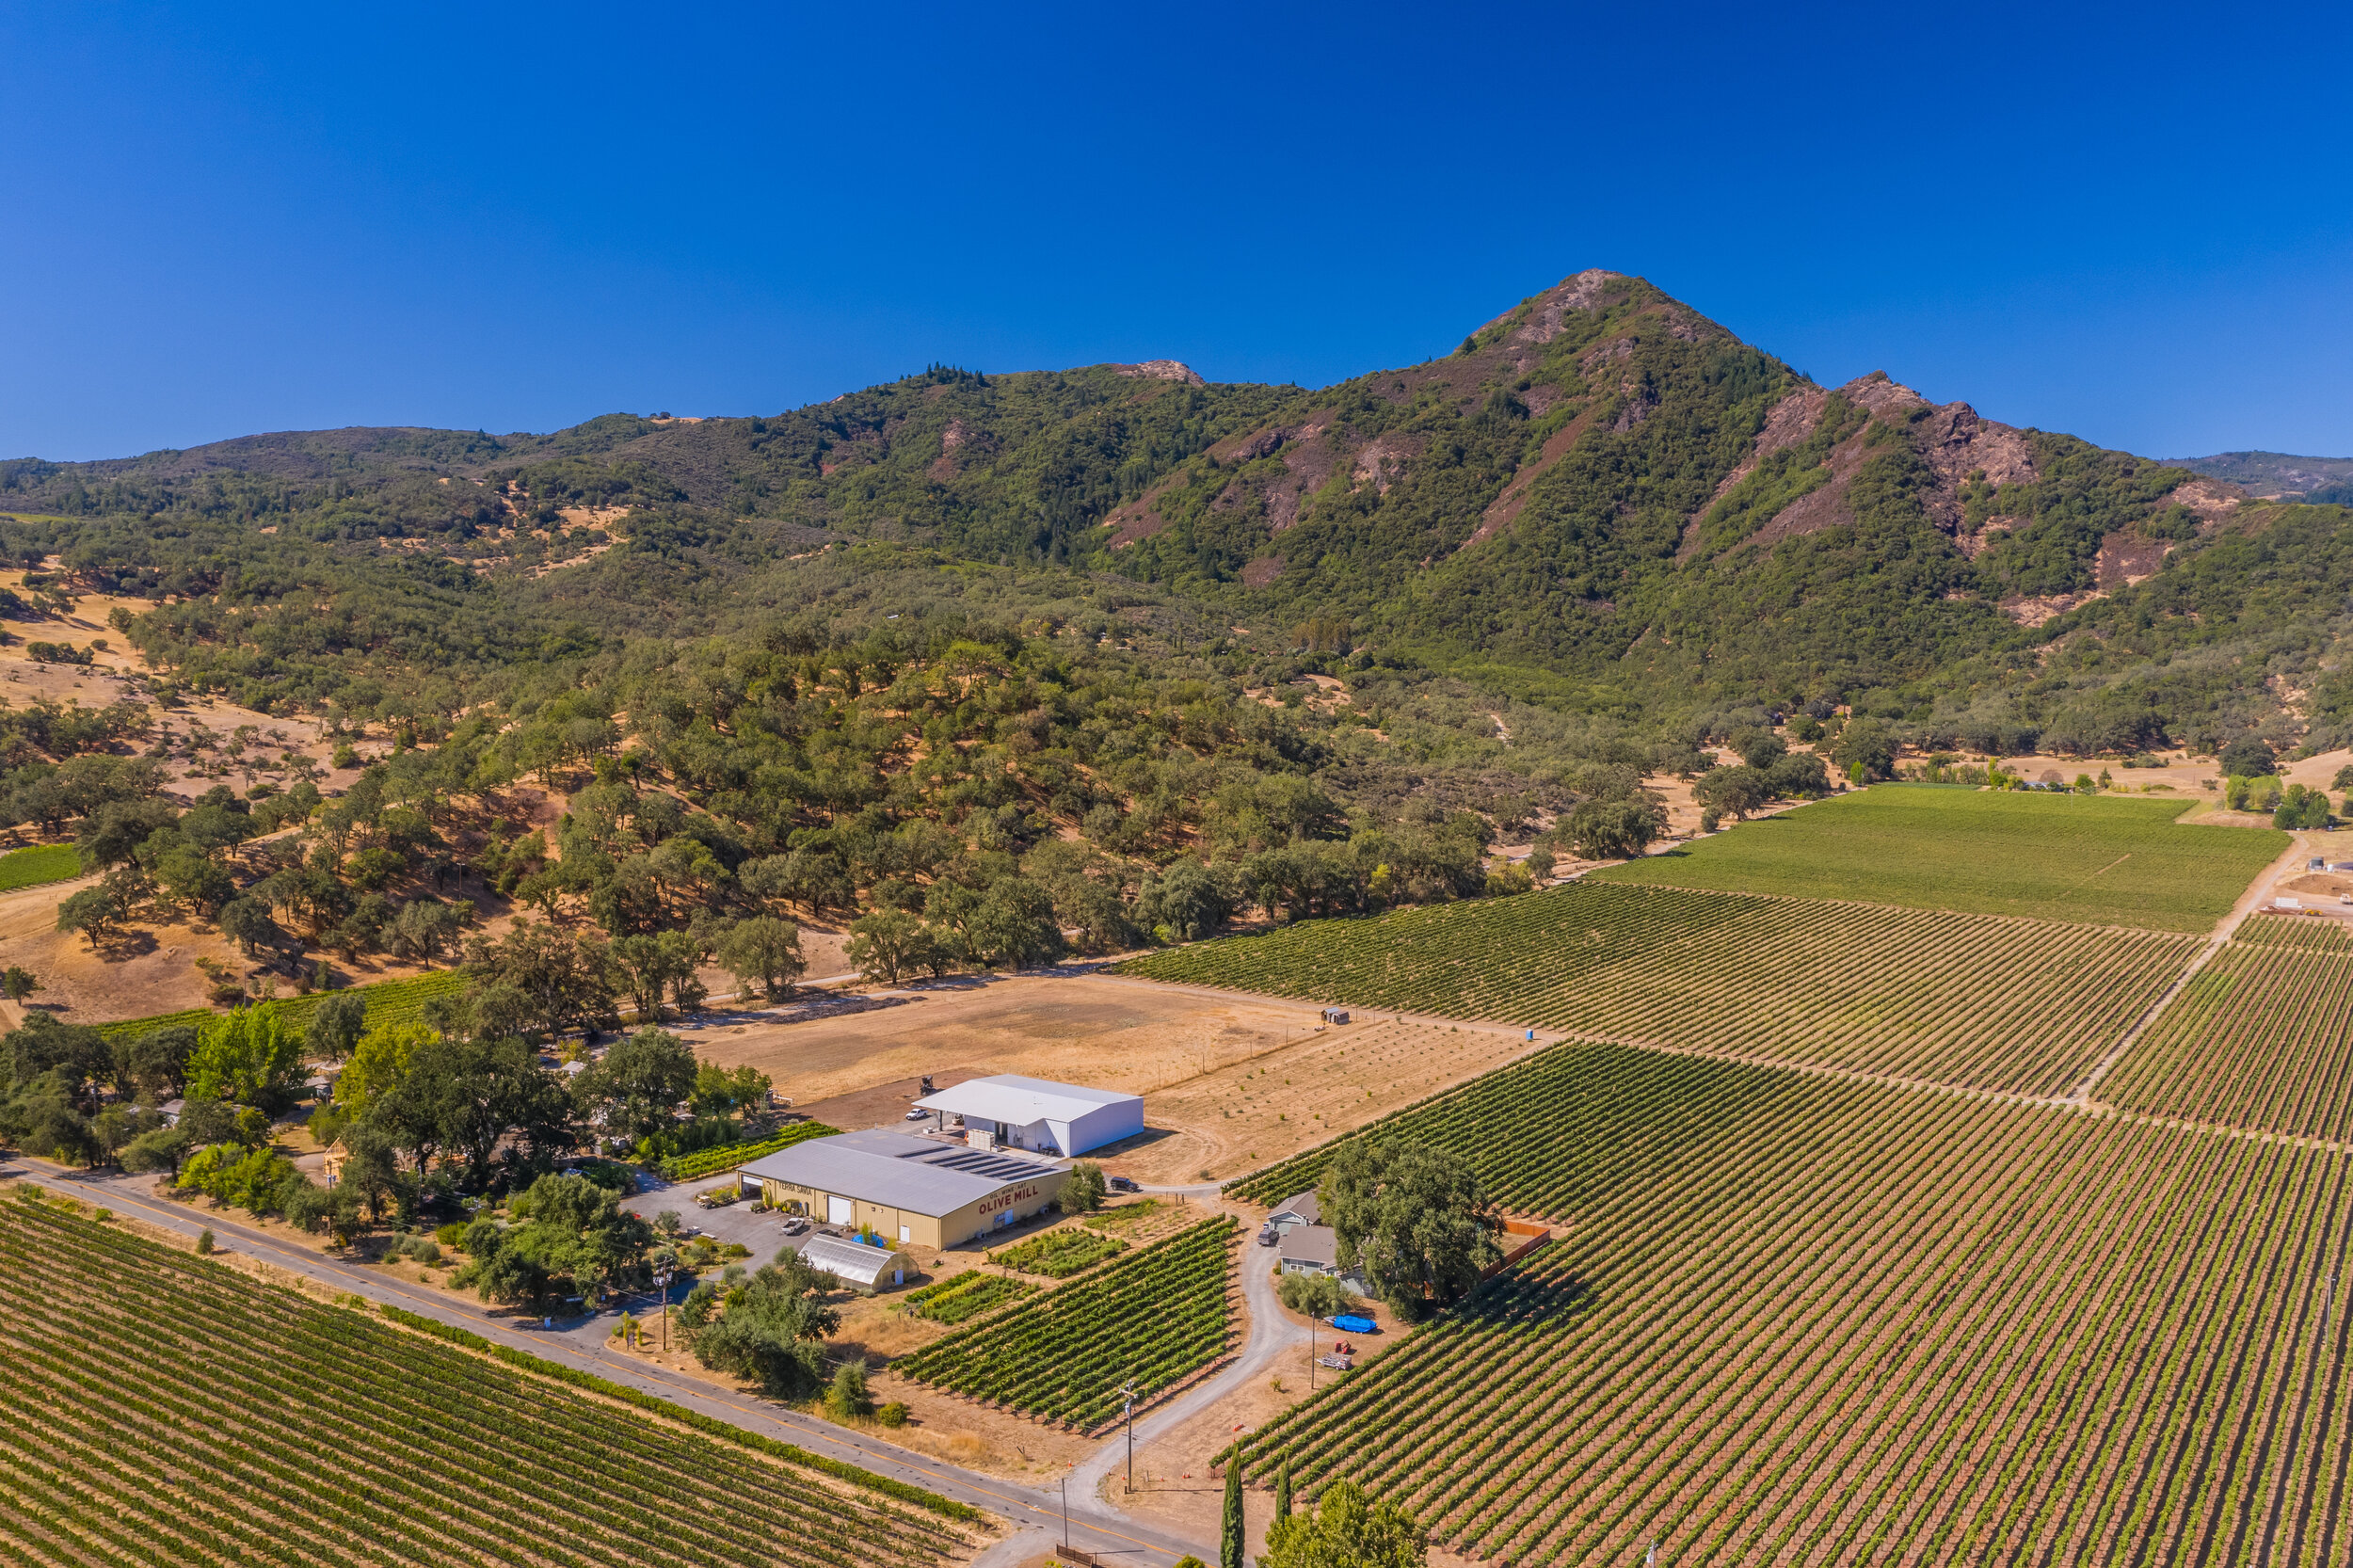 OUR 58-ACRE ESTATE AT THE FOOT OF DUNCAN PEAK